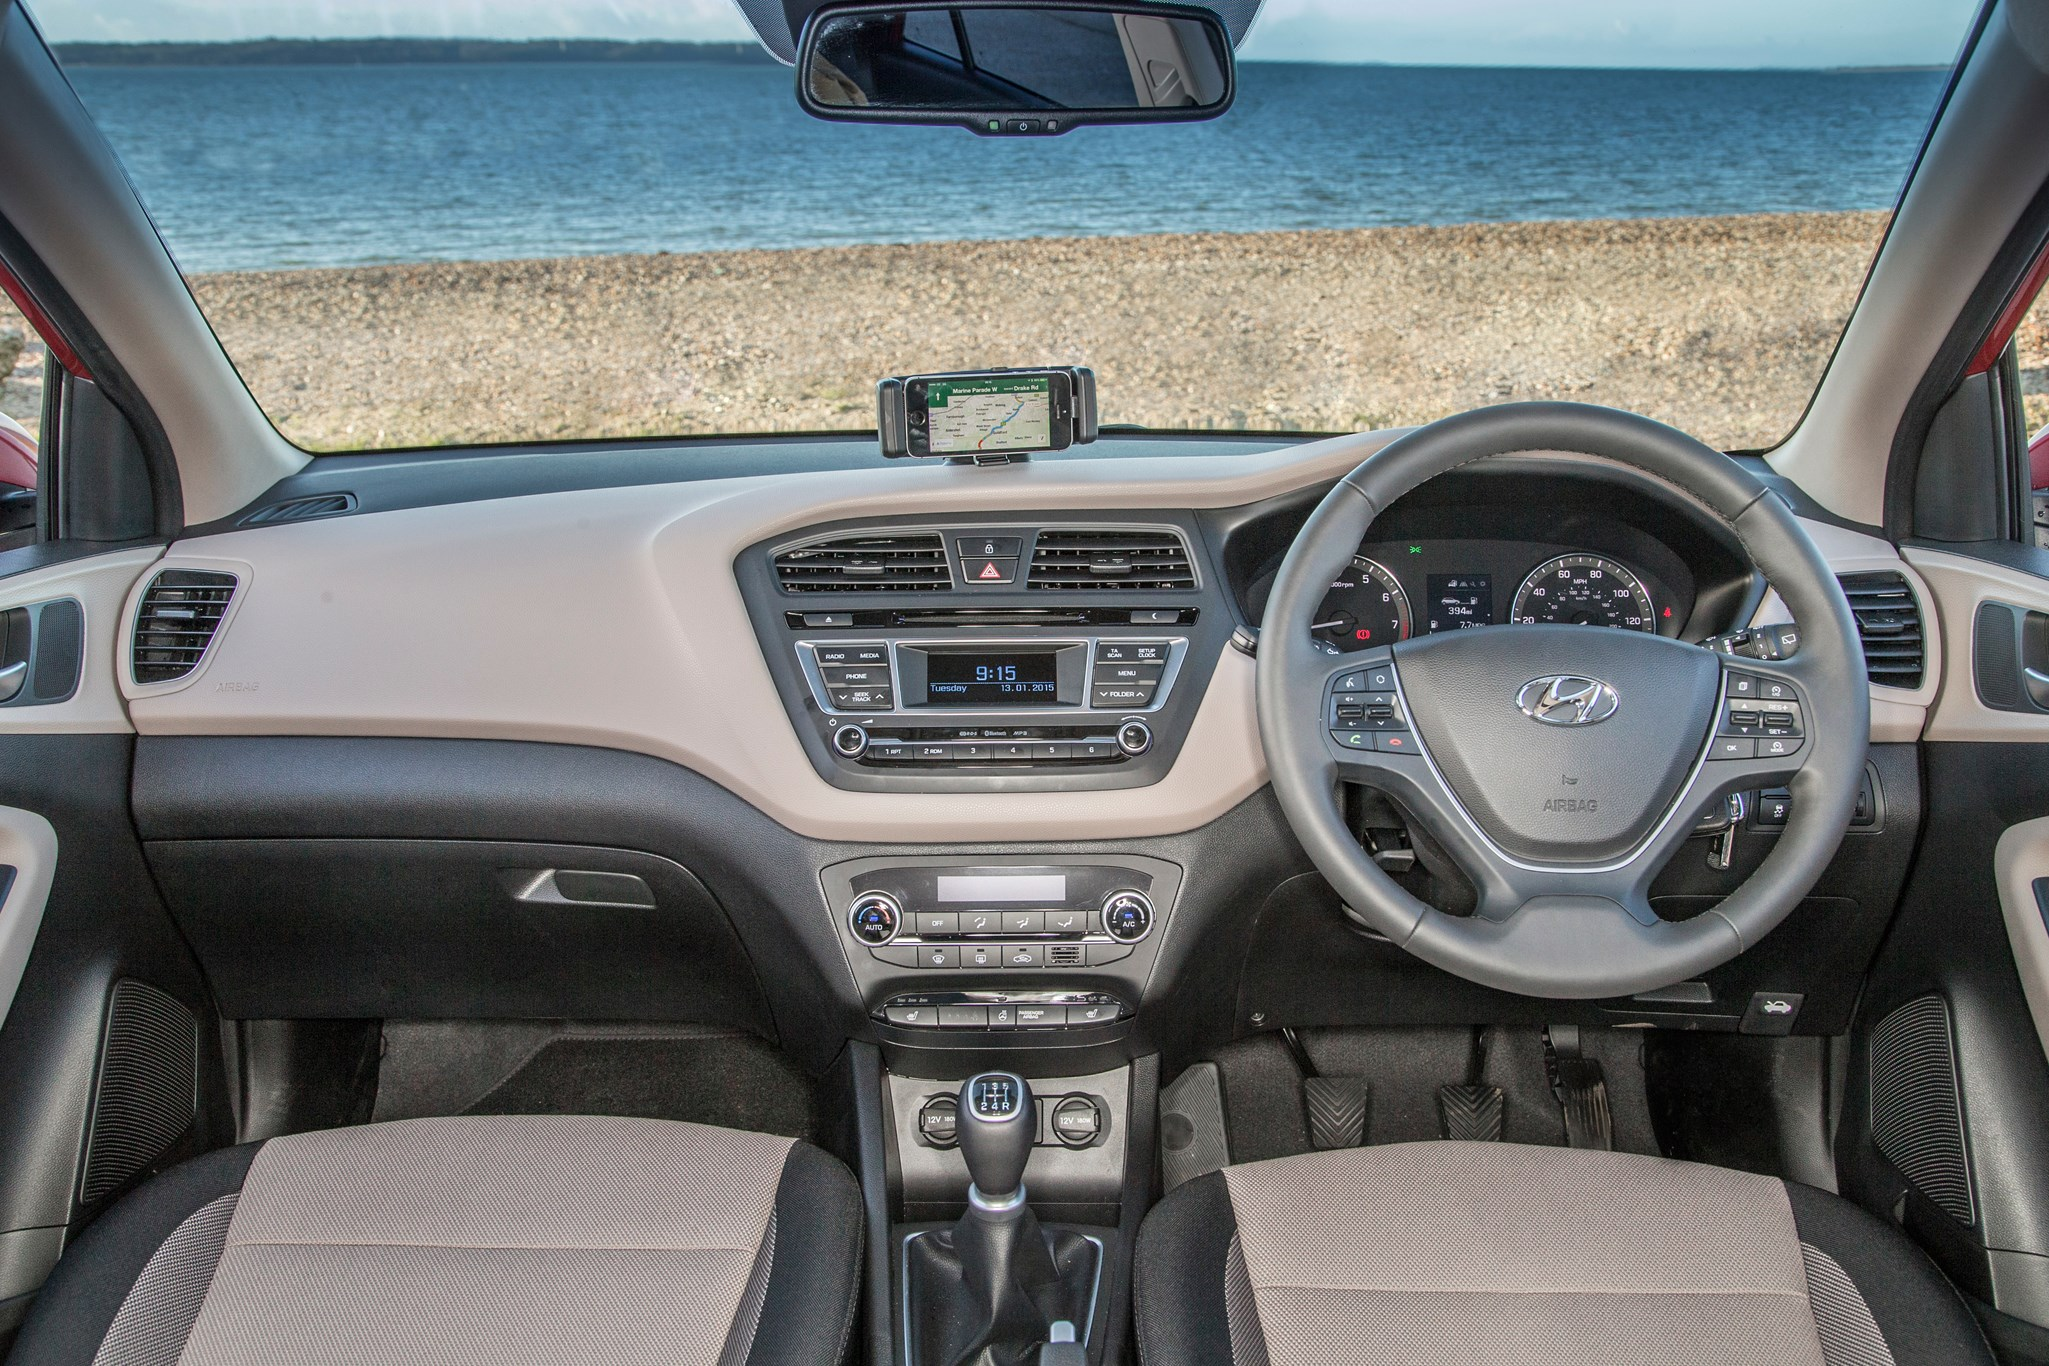 2011 hyundai i20 reviews specifications photos price -  Contrast Colour Scheme In This Particular Hyundai I20 Makes The Interior A Bit More Interesting